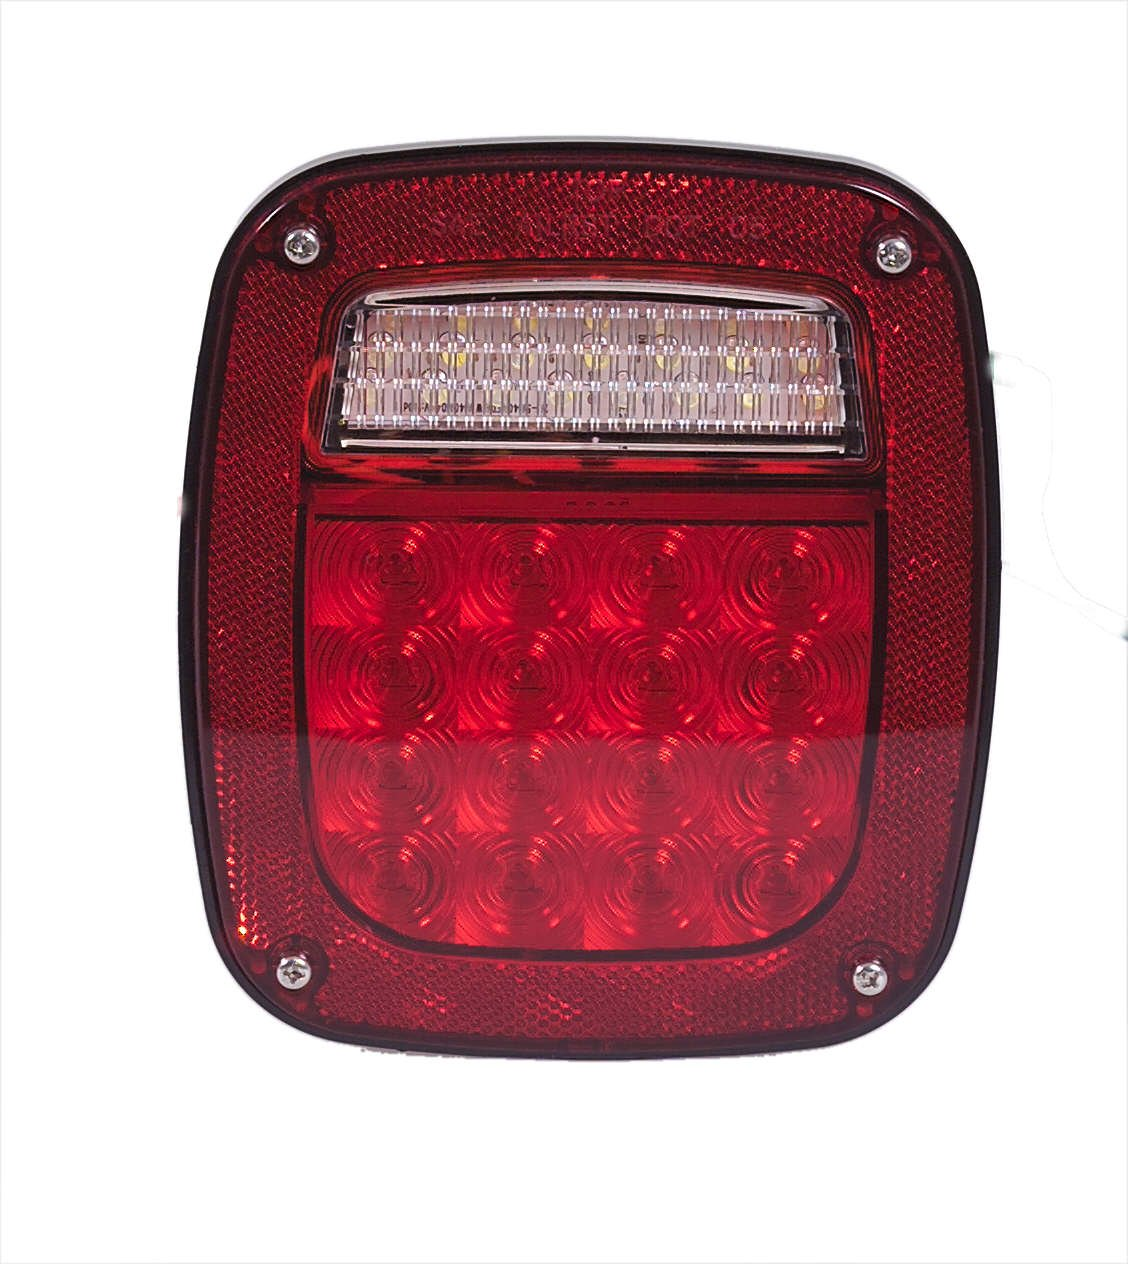 Maxxima M42220 Three Stud Box Style Multi-Function Stop Tail Turn & Back Up LED Light by Maxxima (Image #1)